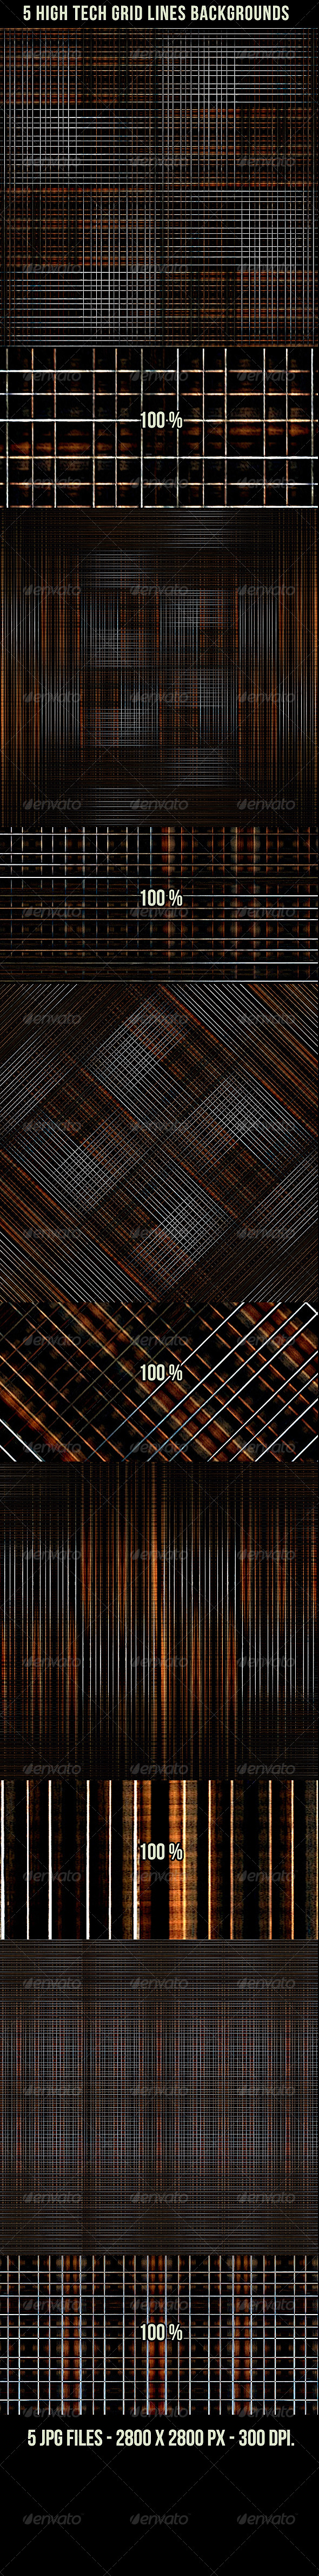 GraphicRiver 5 High Tech Grid Lines Backgrounds 4105832